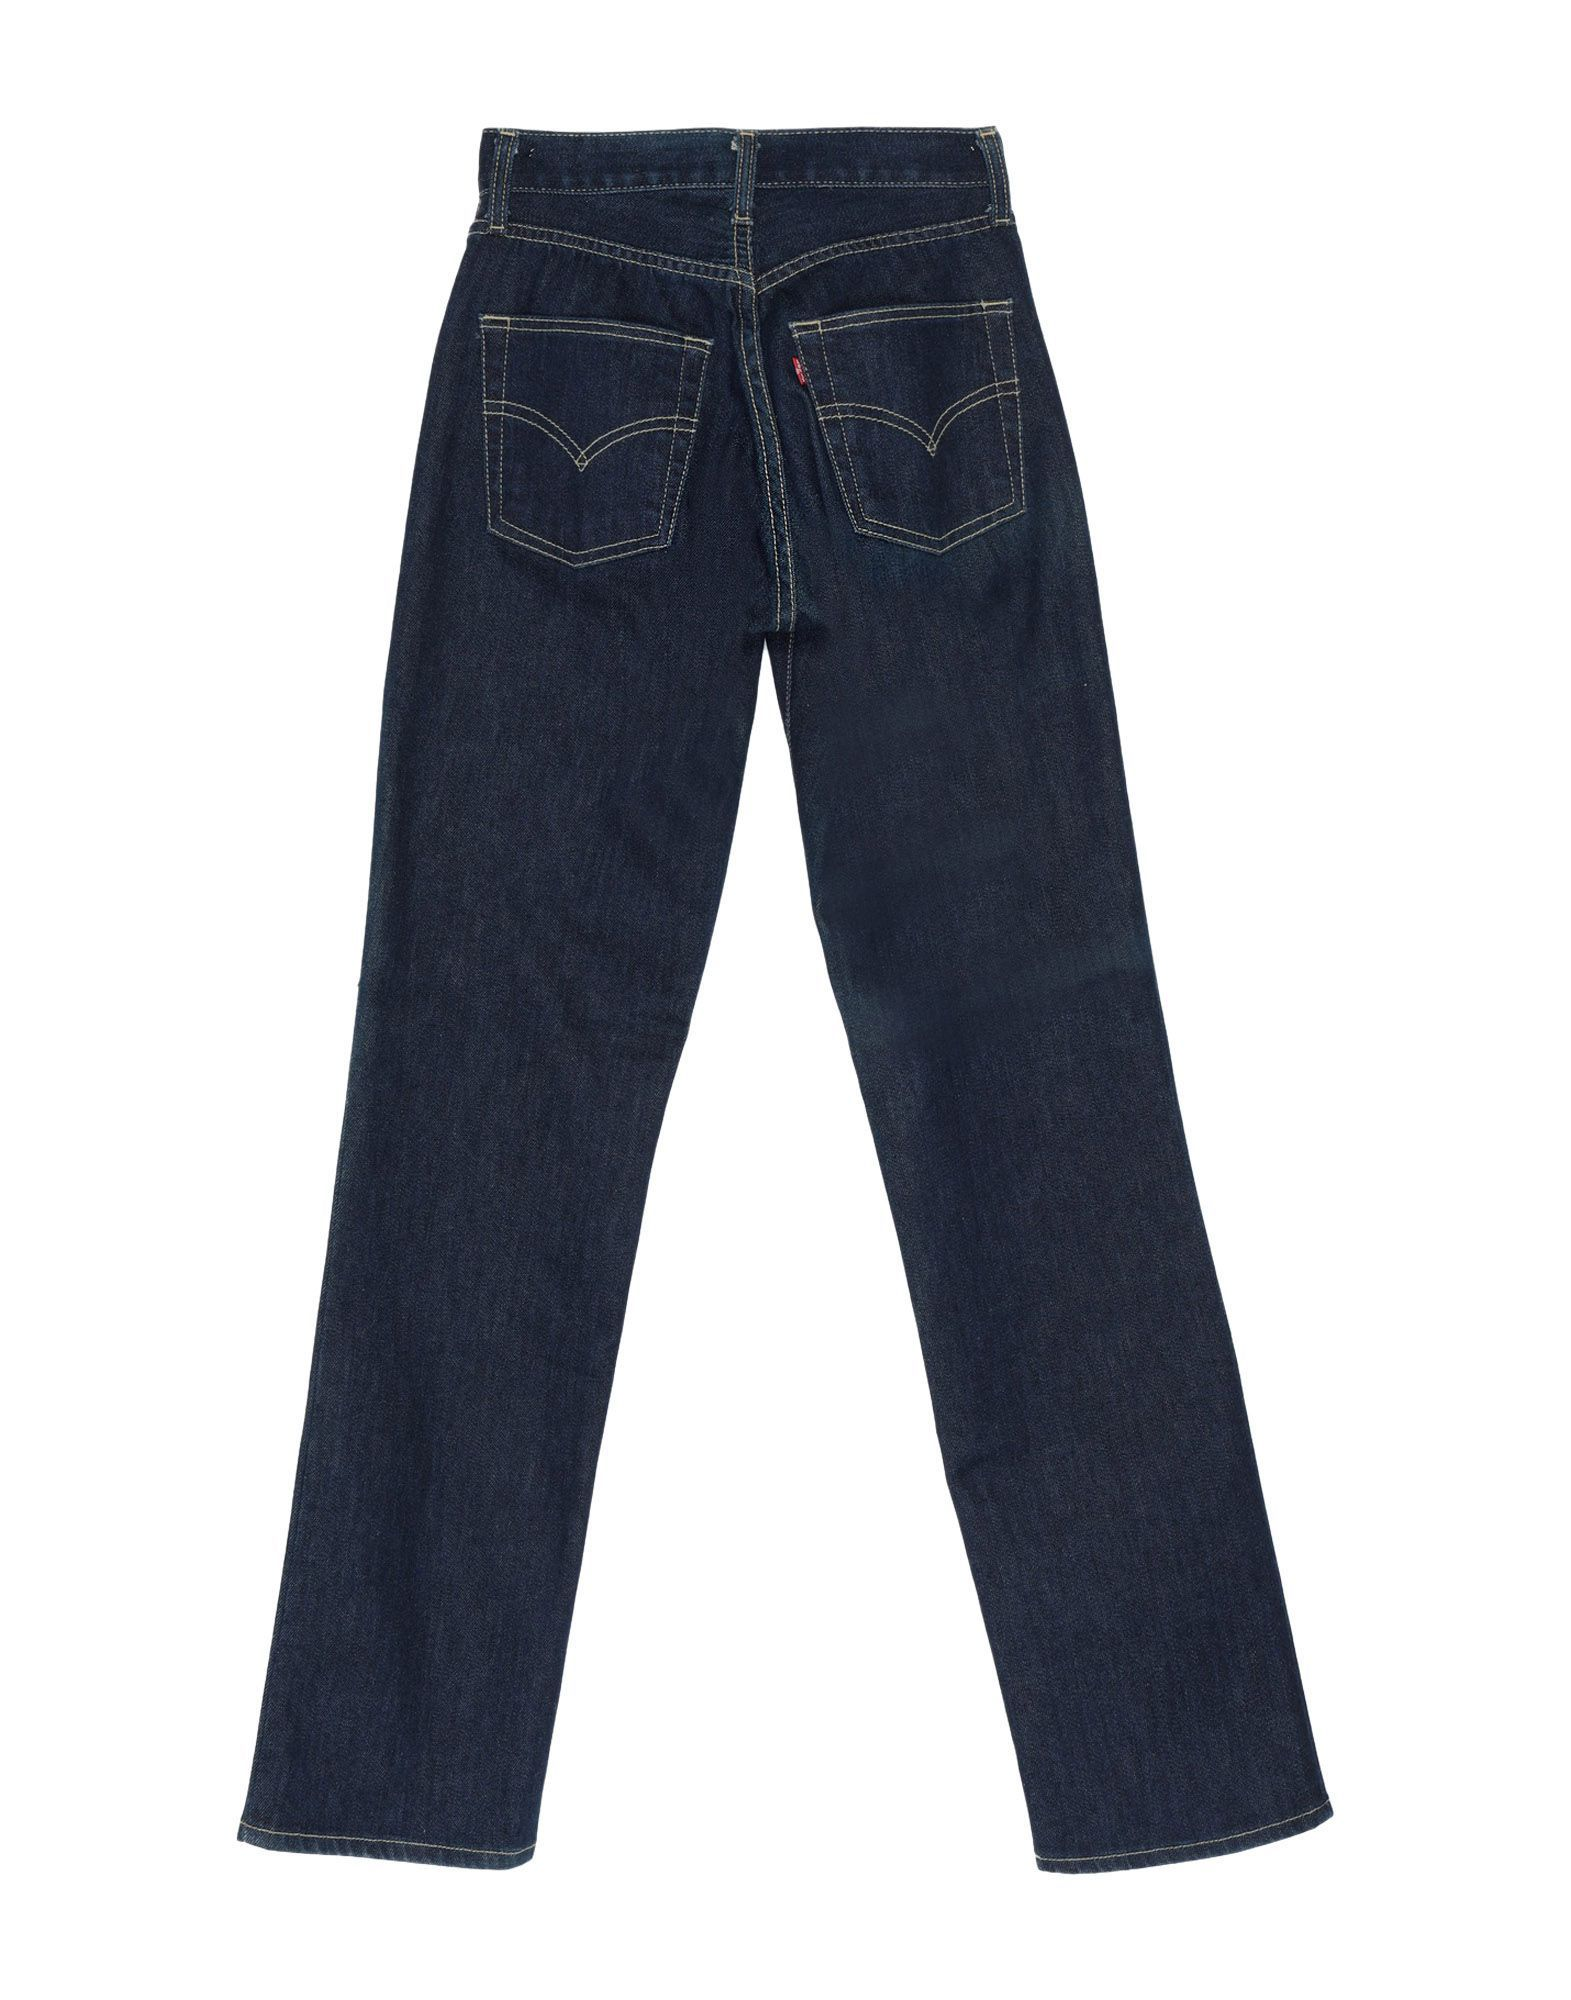 Levi's Blue Cotton Jeans